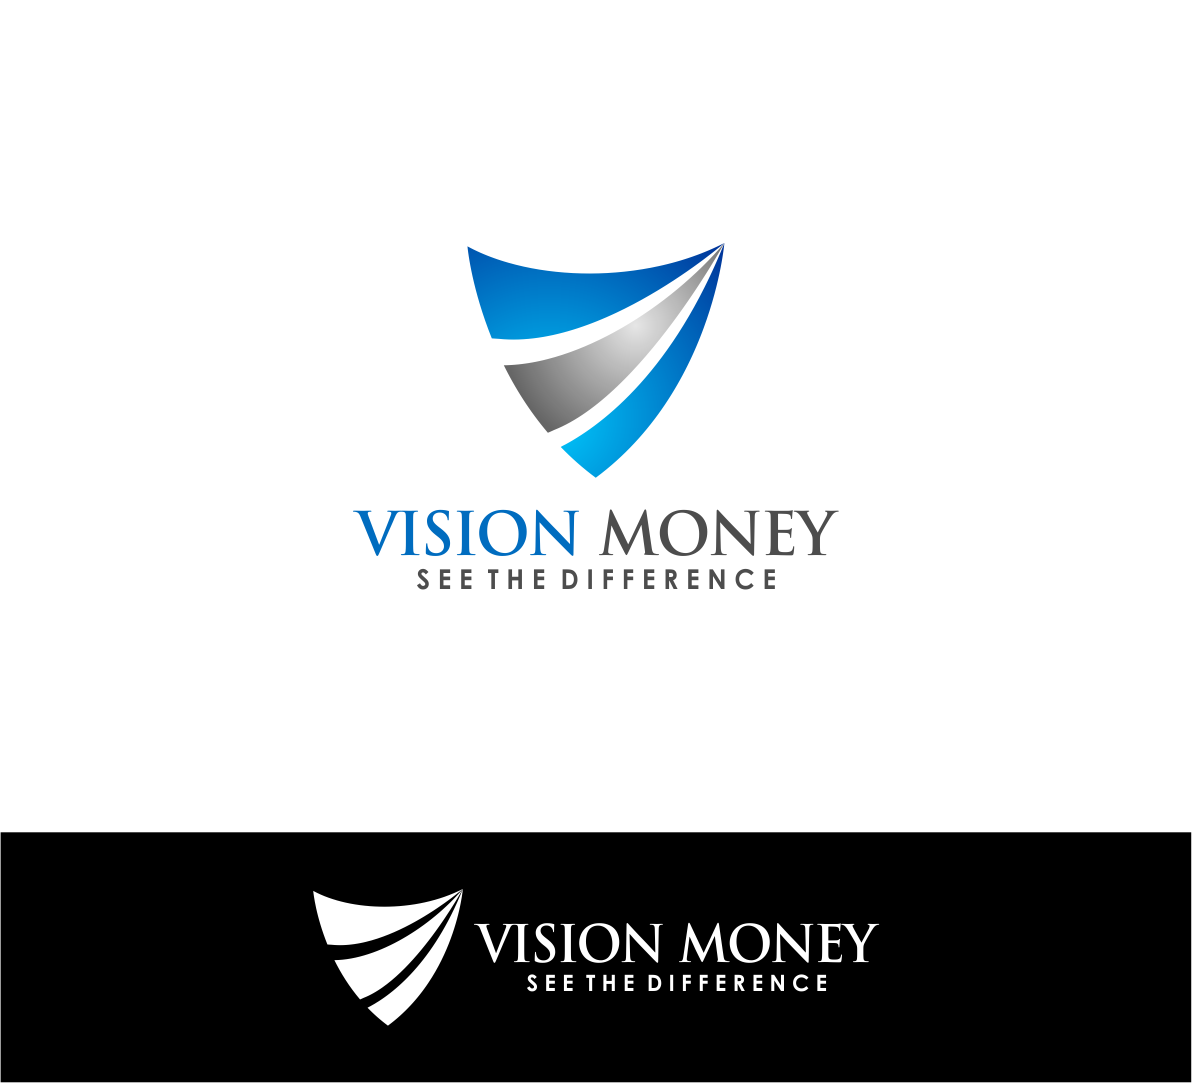 Logo Design by haidu - Entry No. 64 in the Logo Design Contest Captivating Logo Design for VISION MONEY.